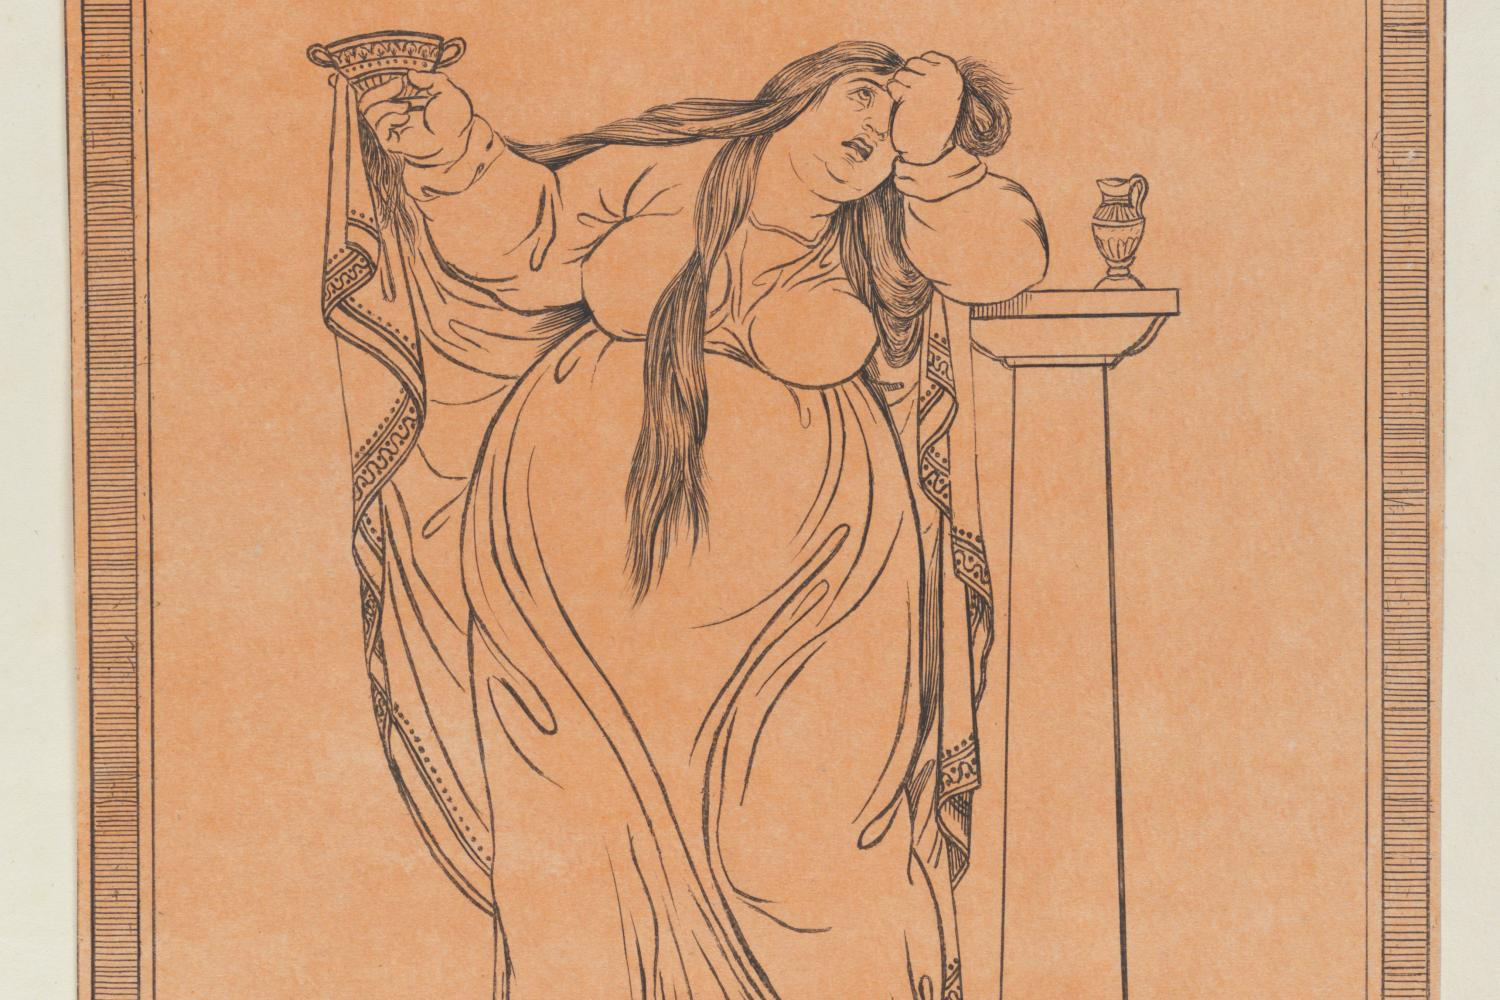 A print of an obese women looking forlorn